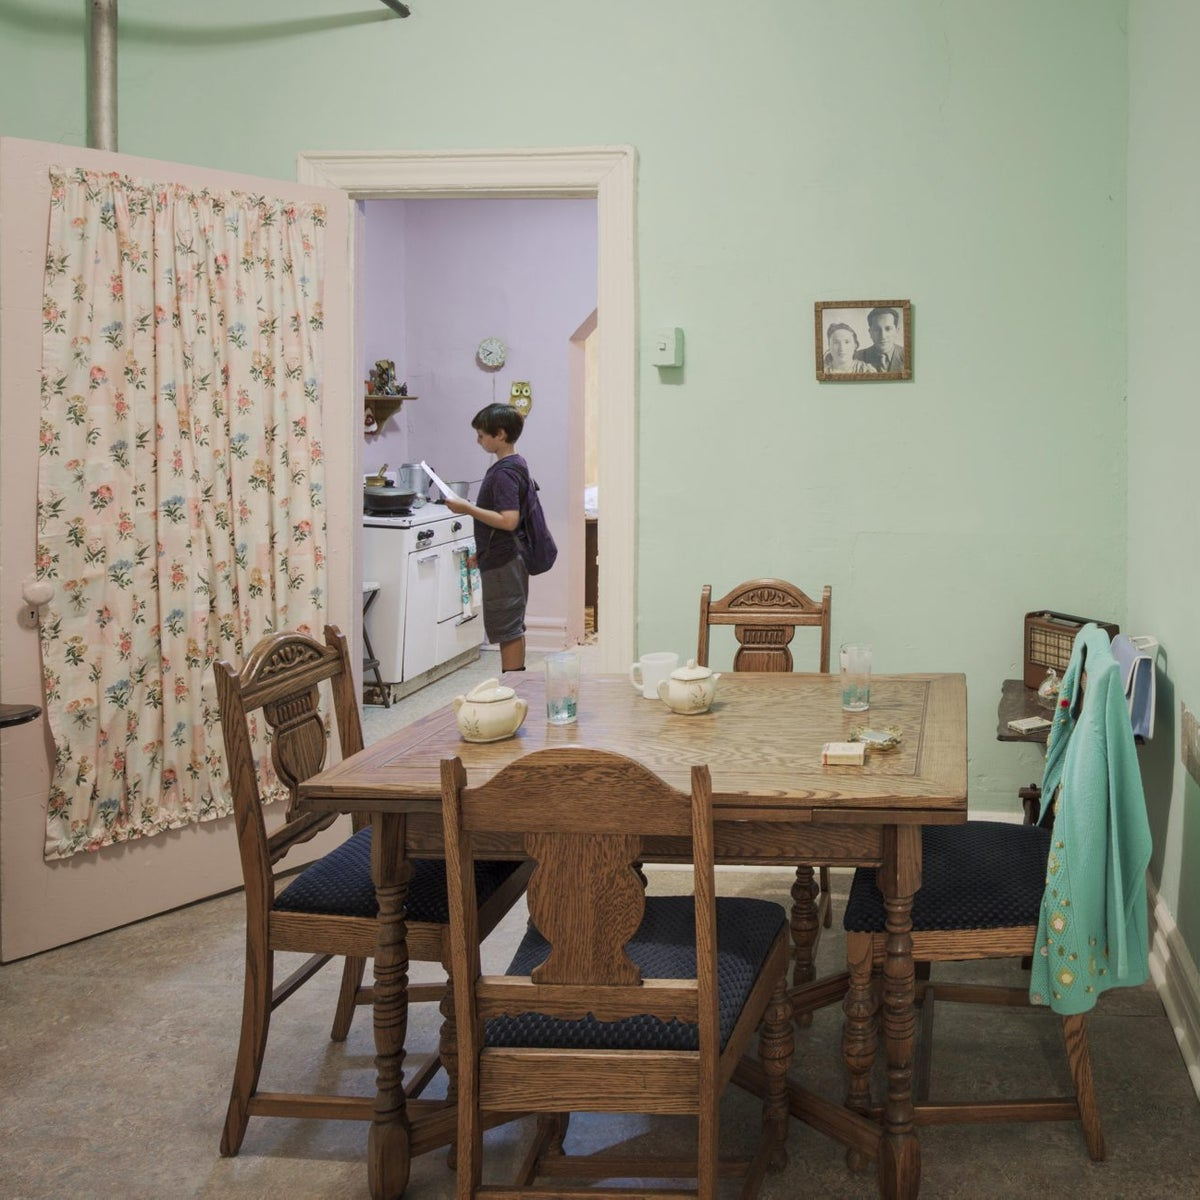 The 'Under One Roof' exhibit tells the story of three families.